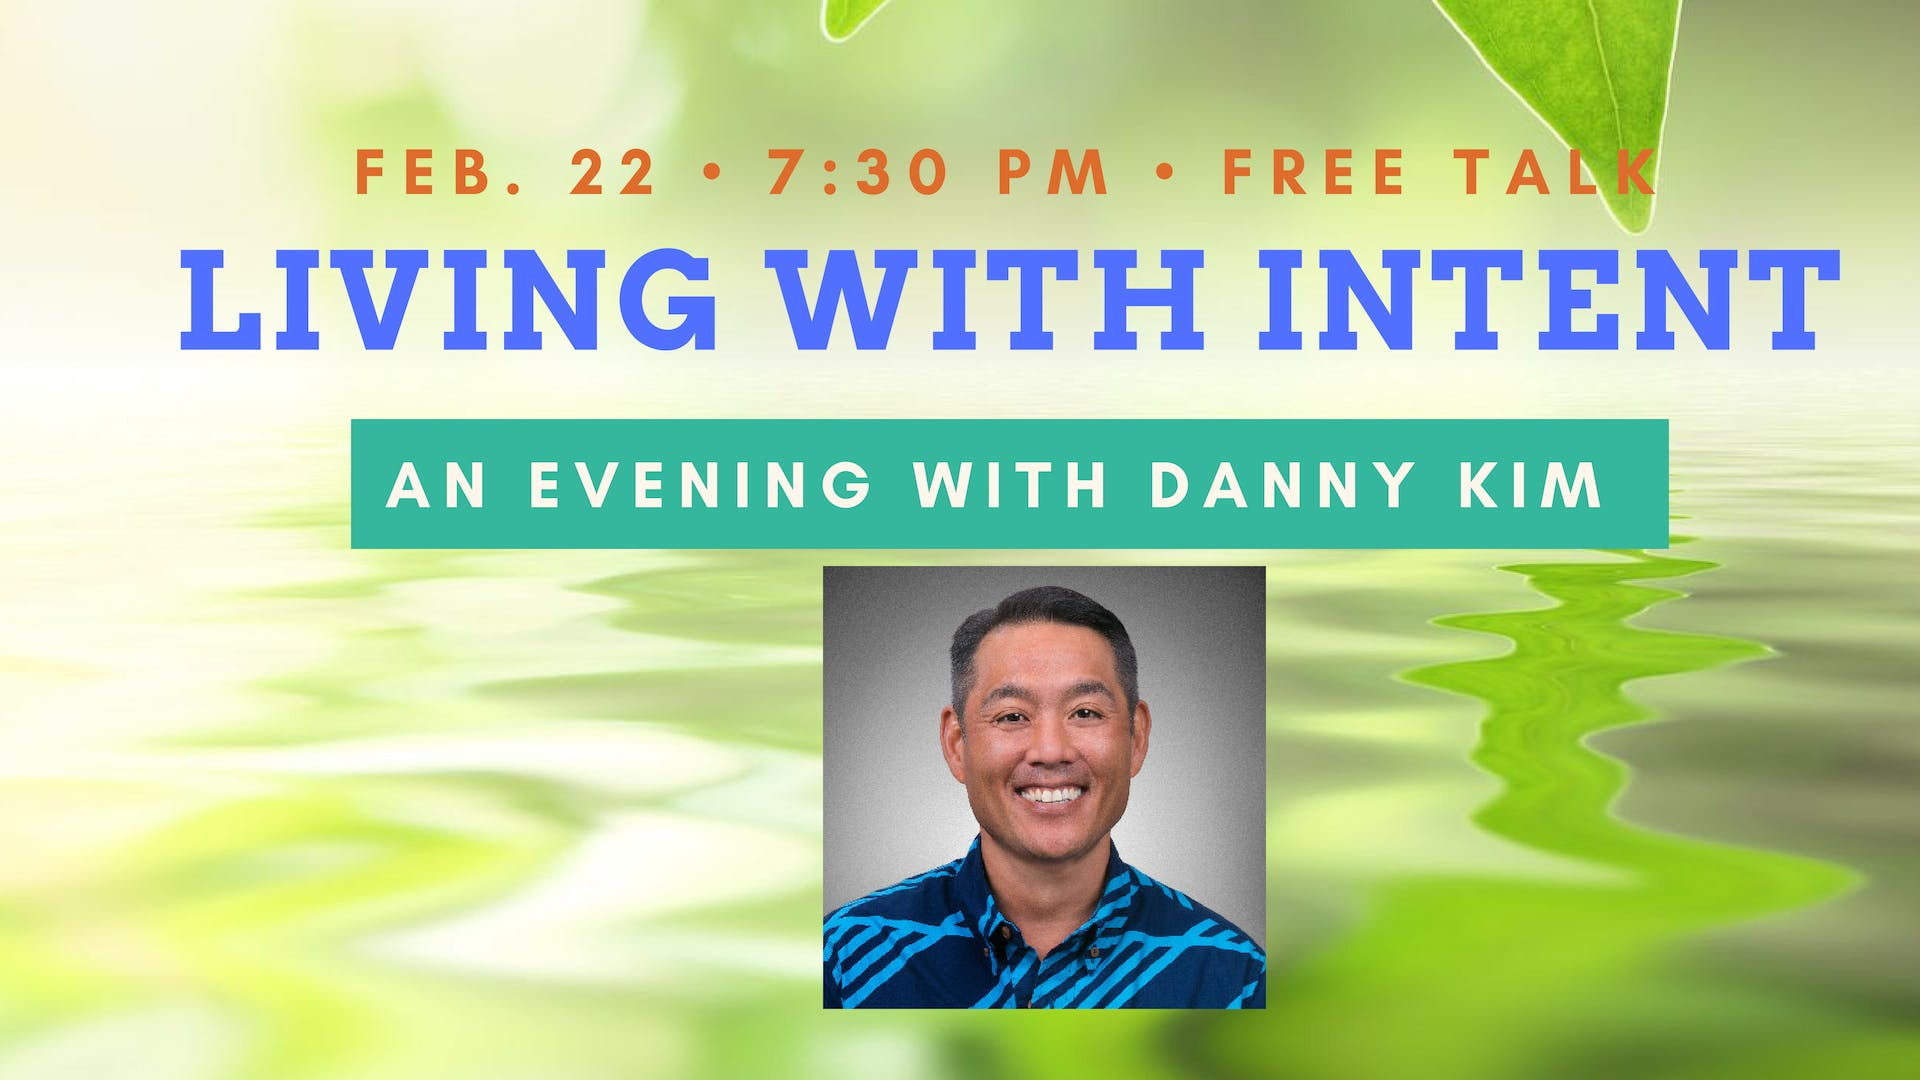 Living Intentionally with Danny Kim